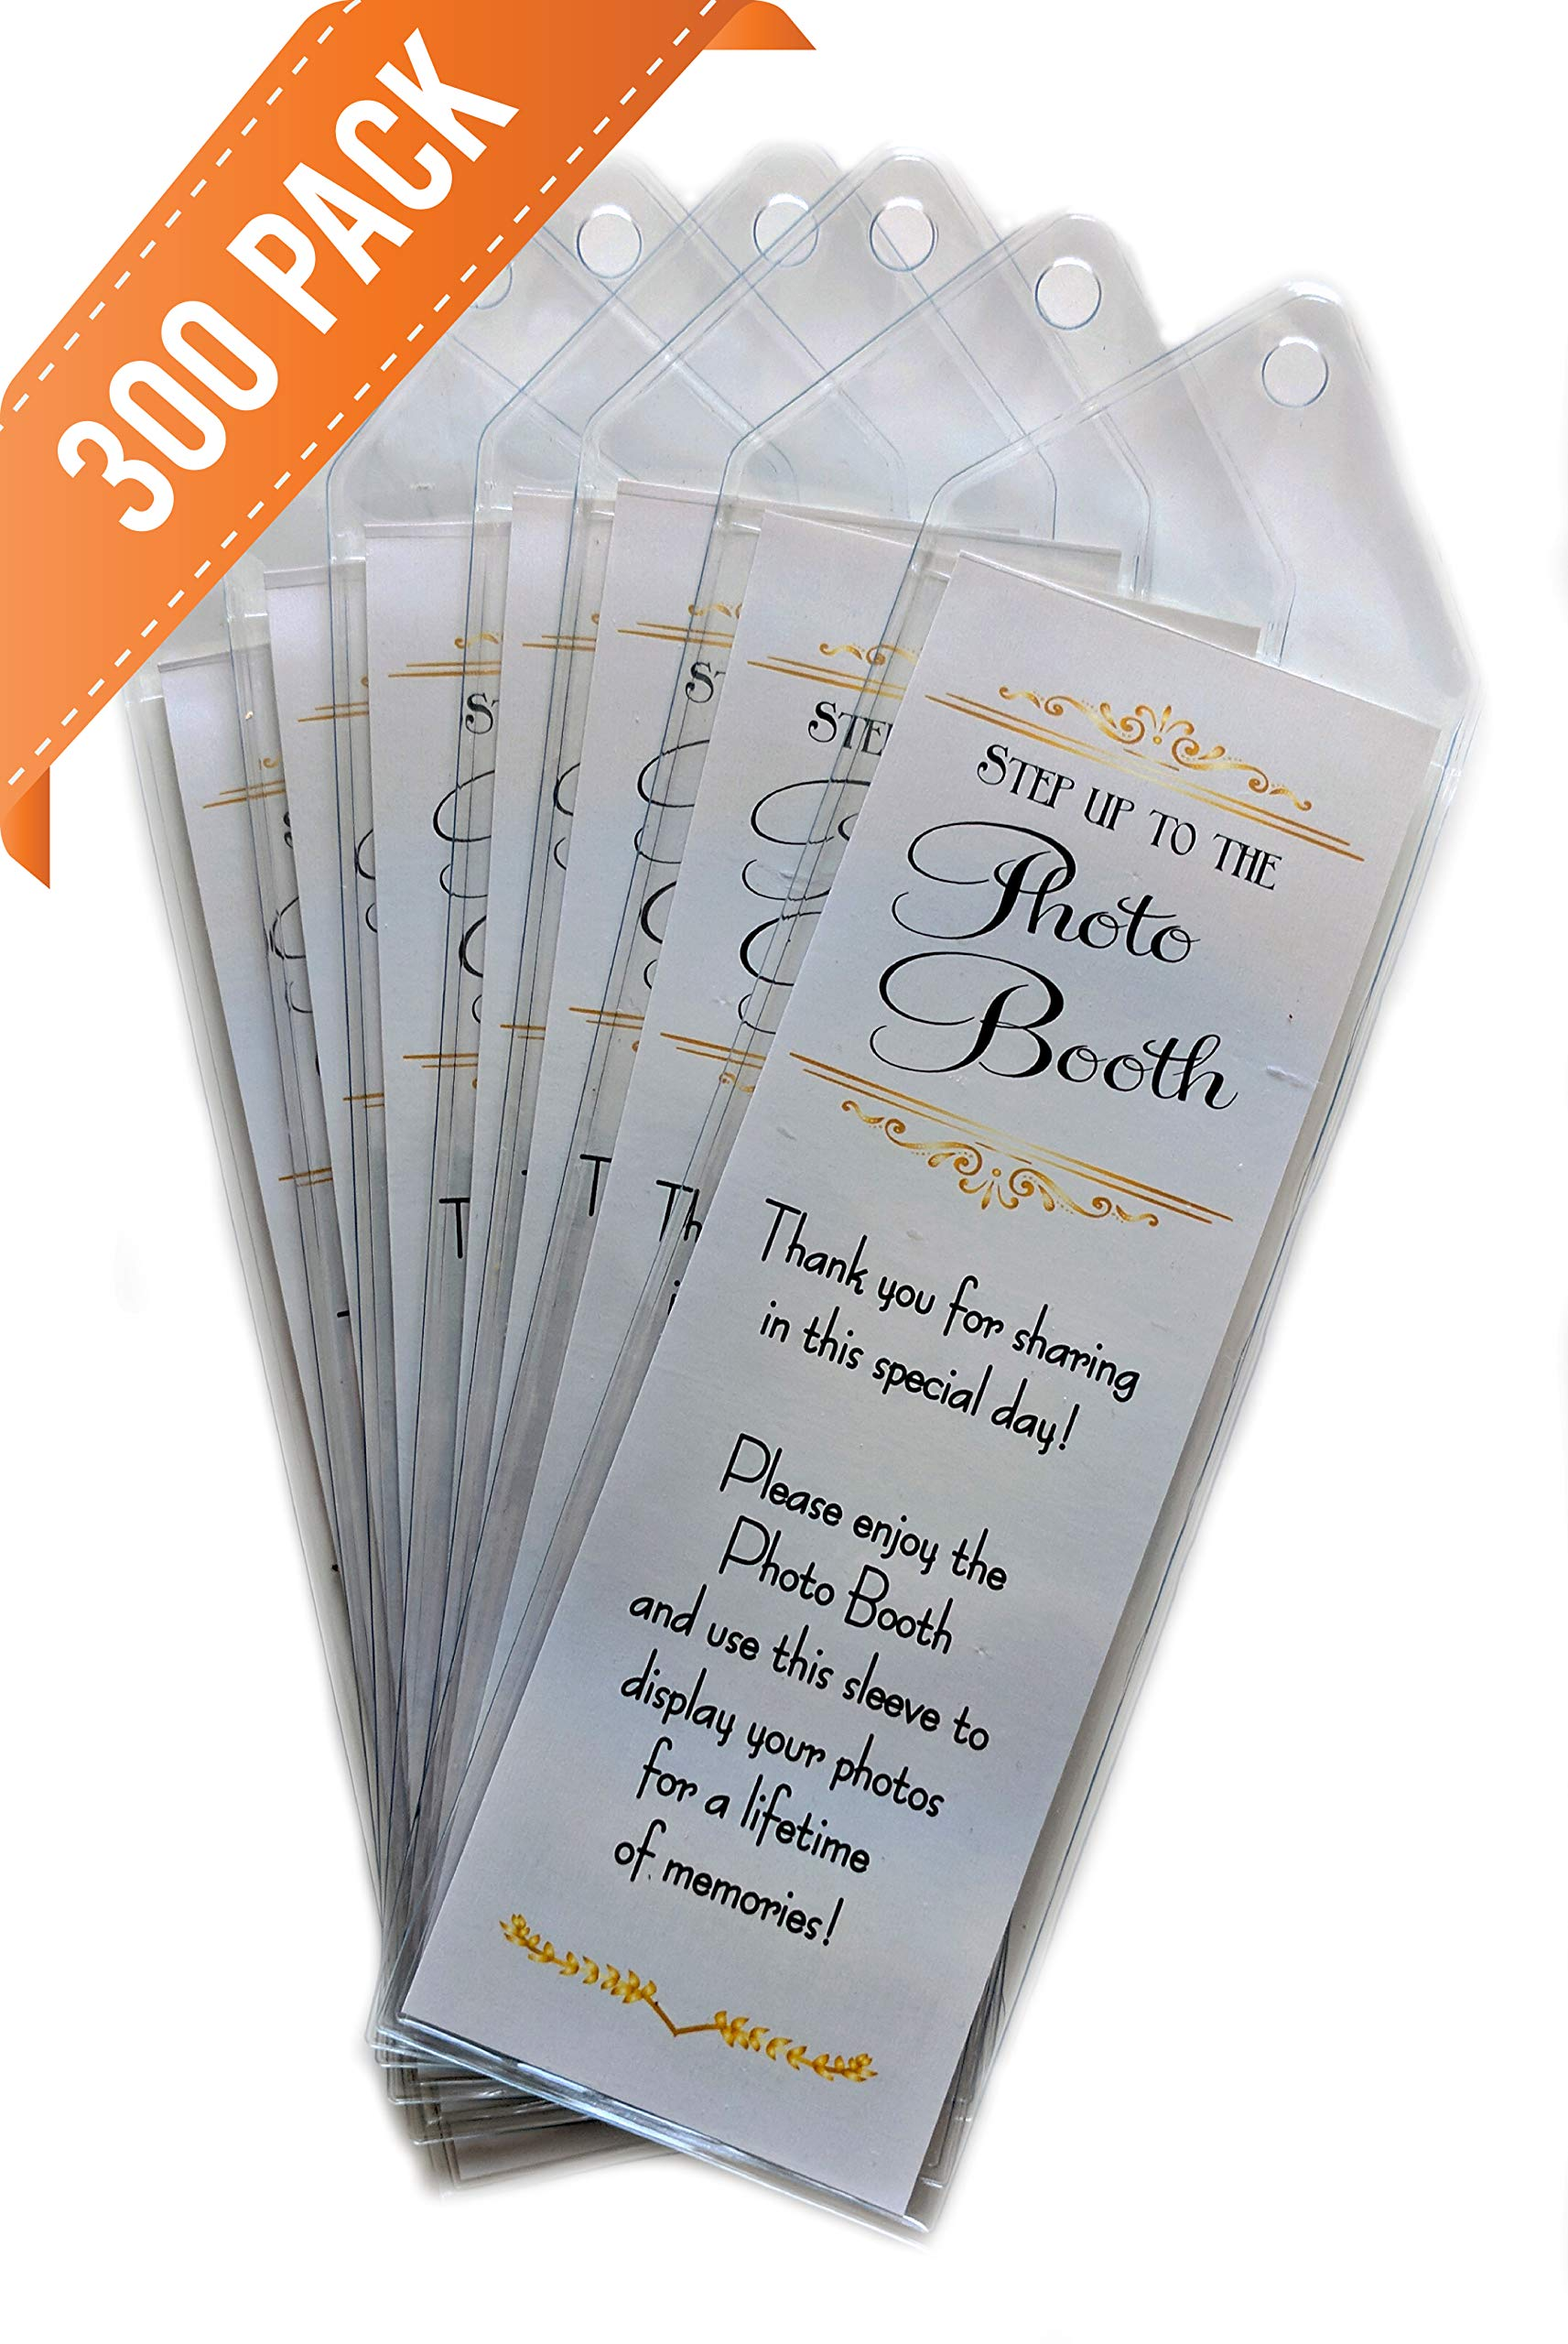 Premium Photo Booth Bookmark Sleeves with Inserts 2 1/4'' X 6 1/4'' for Wedding (300 Pack) by Photo Booth Nook